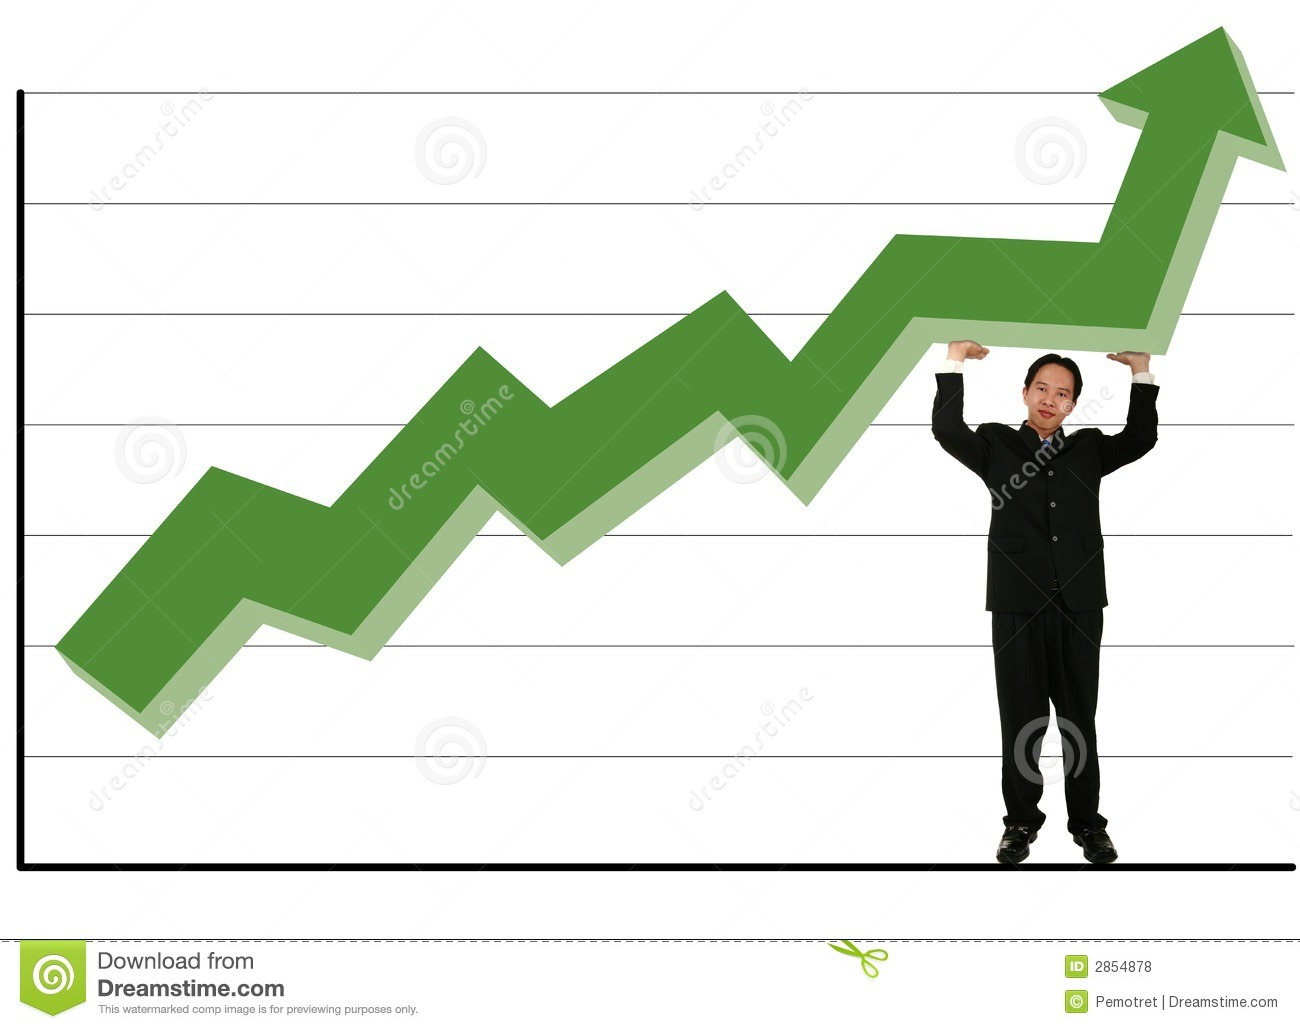 Royalty Free Stock Photos: Holding Up Green Stock Chart. Image ...